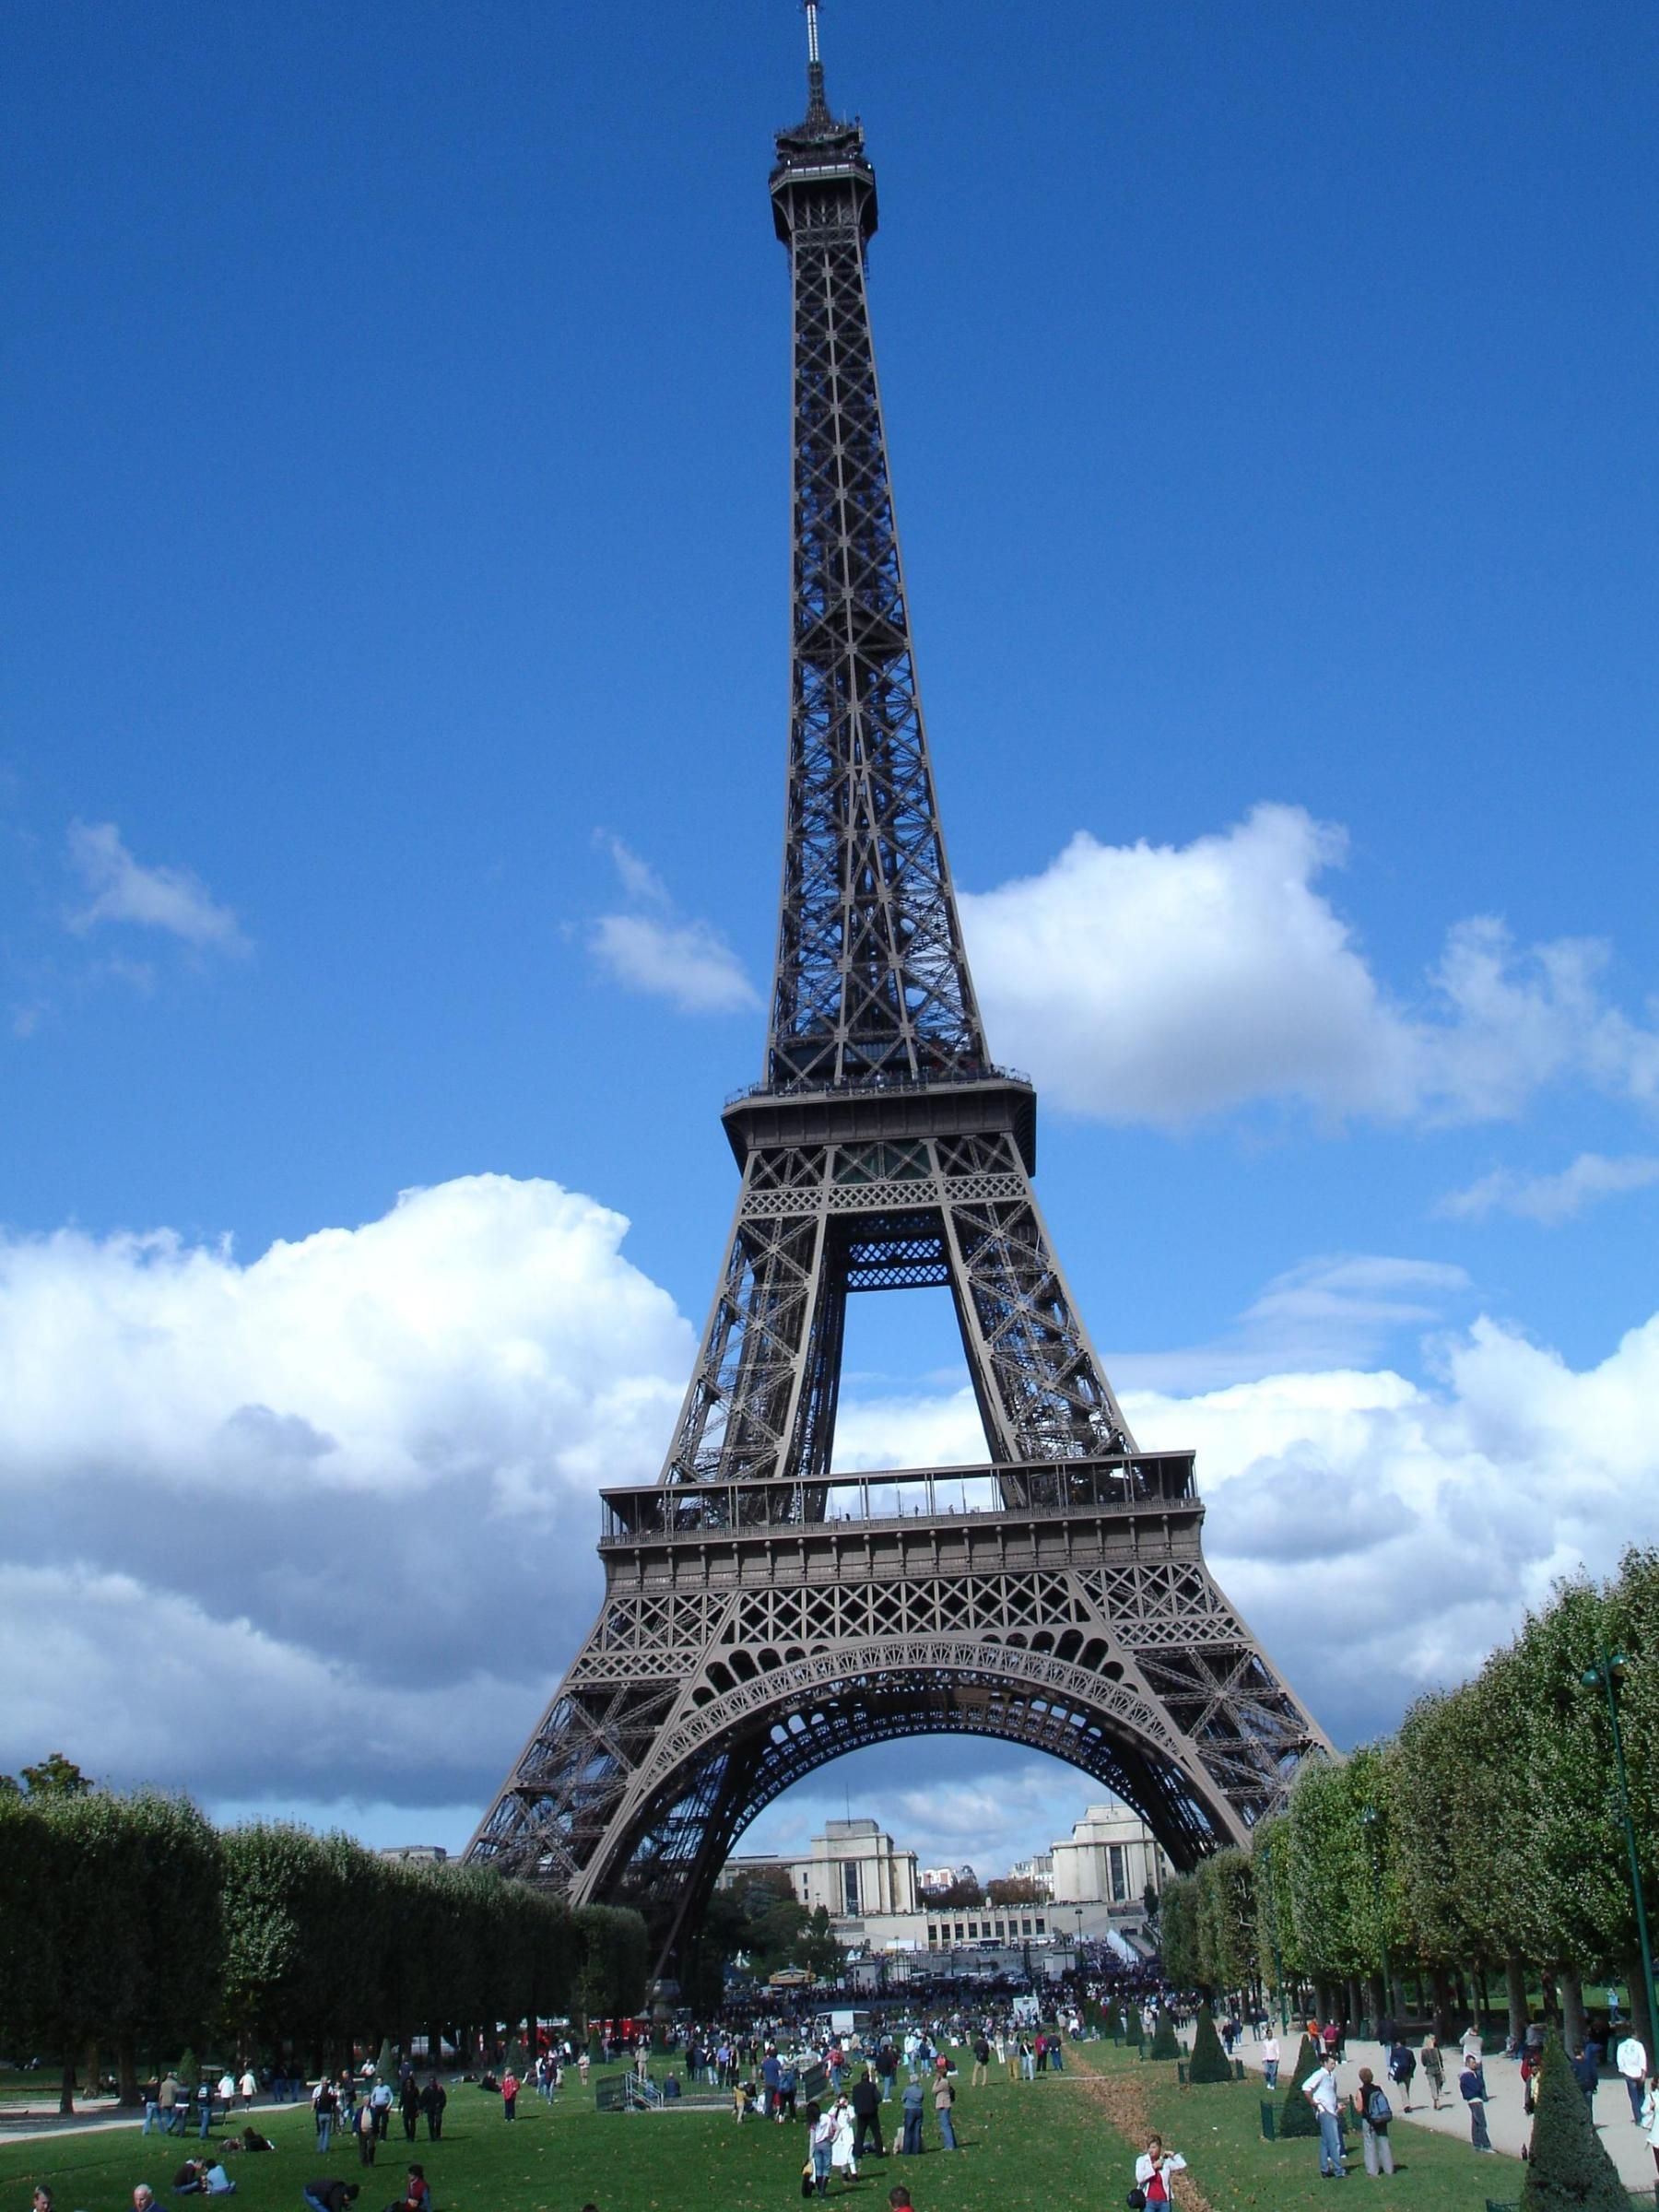 Outdoor cafe in paris with tower in background - Paris France The Eiffel Tower Nickname La Dame De Fer The Iron Lady